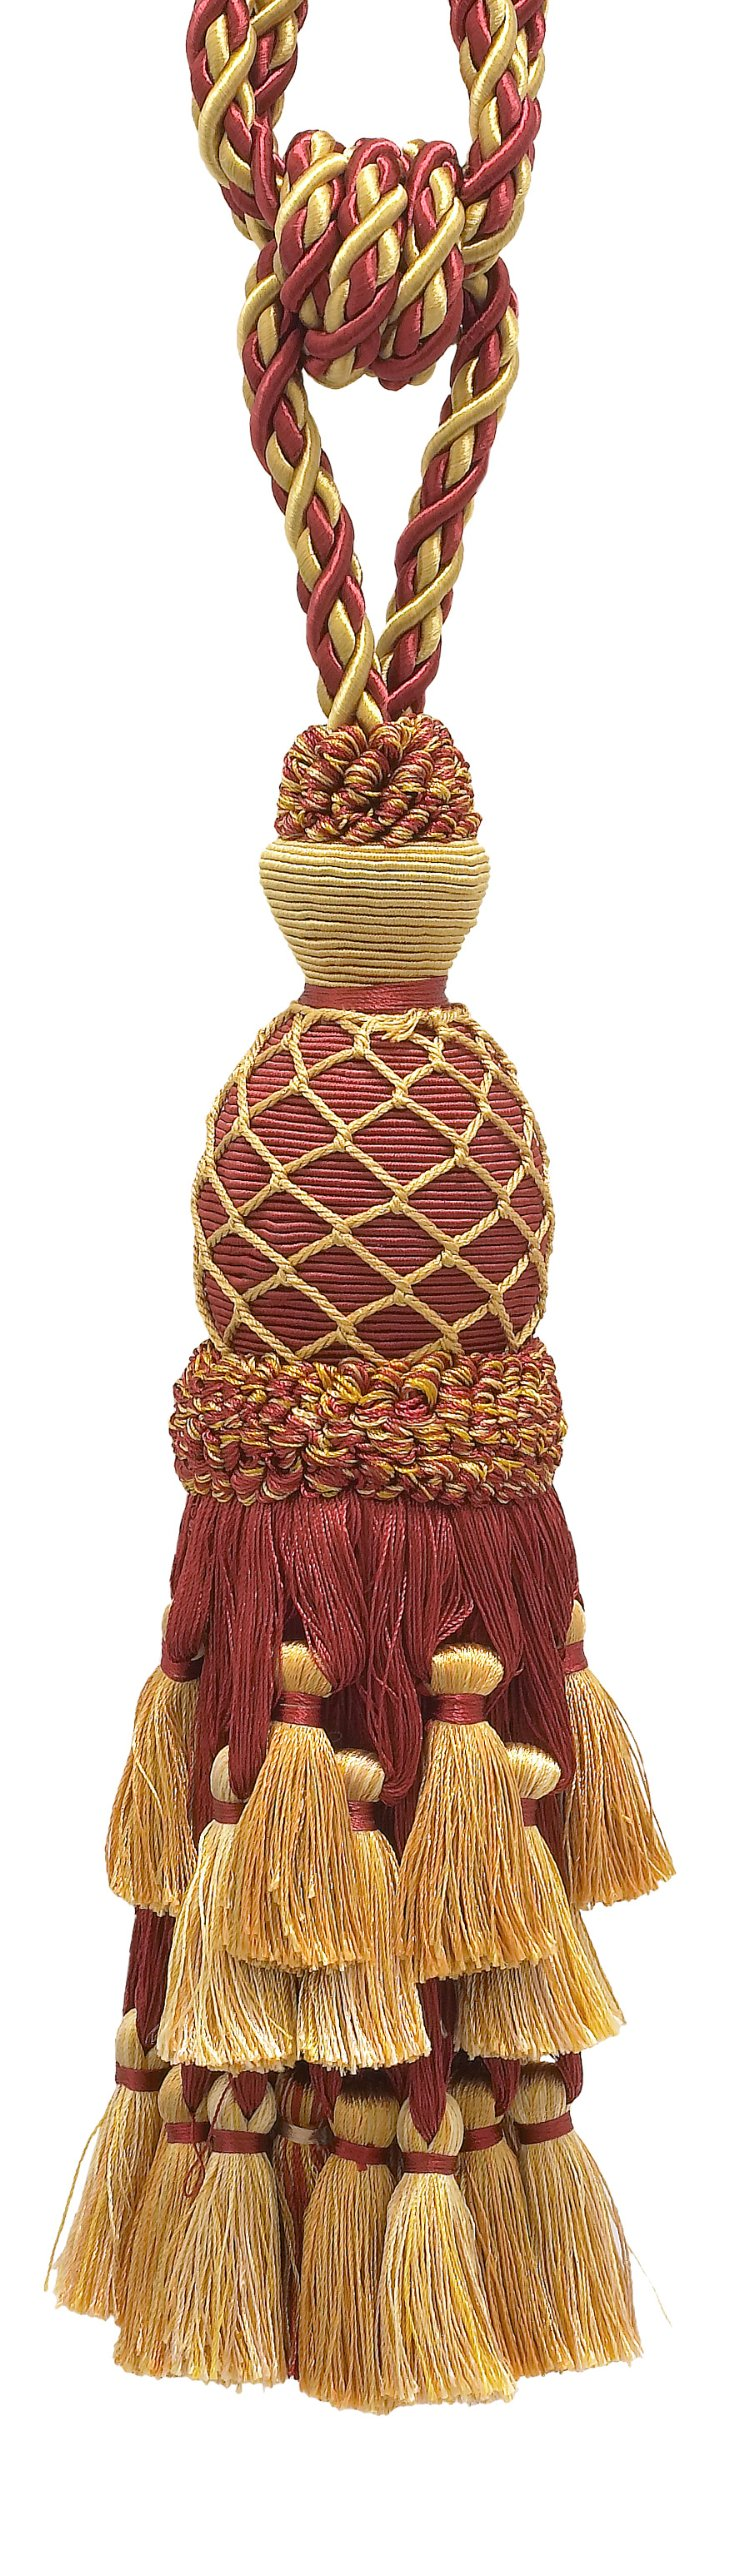 """Lavish Burgundy Red, Gold Large Curtain & Drapery Tassel Tieback/Large 11"""" tassel, 34"""" Spread(embrace), 7/16"""" Cord, Imperial II Collection Style# TBIL-1 Color BURGUNDY GOLD - 1253"""